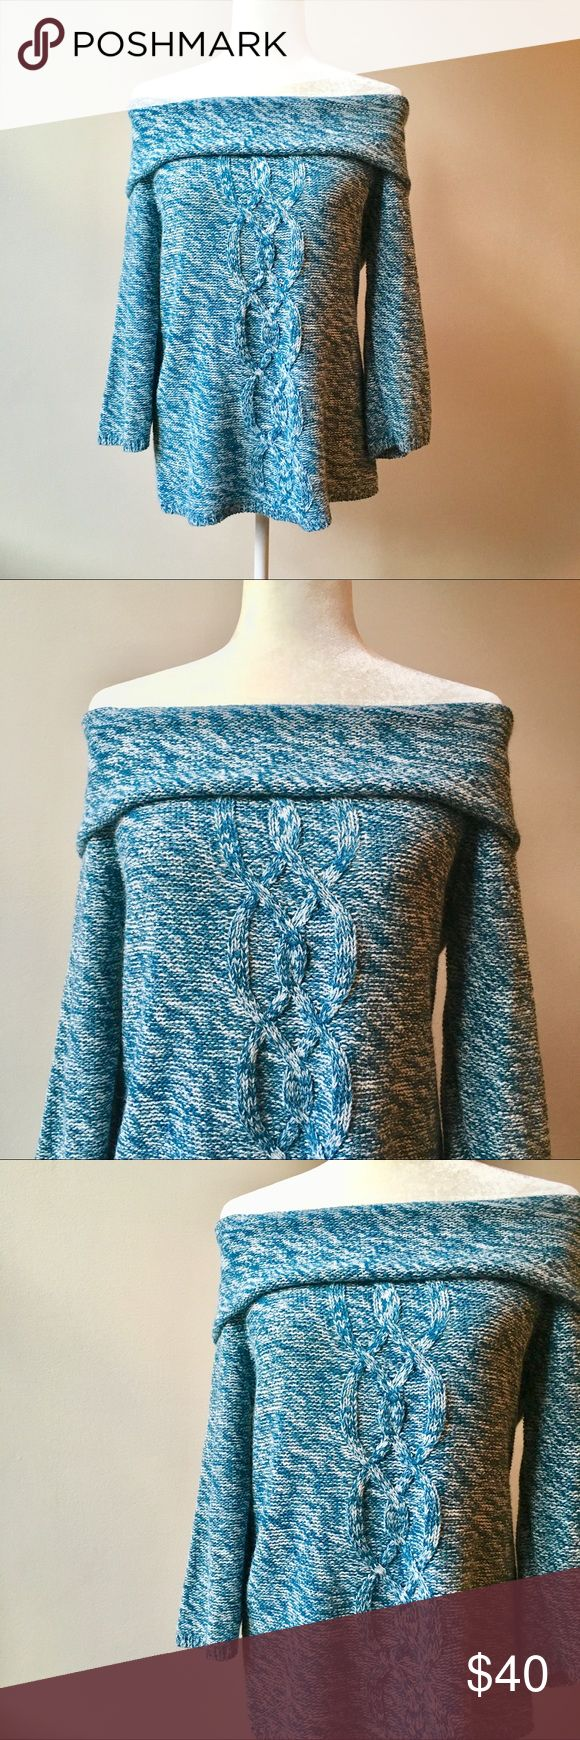 Olivia Sky Blue Cable Knit Off the Shoulder Top Olivia Sky Blue Cable Knit Off the Shoulder Top Sz Medium. Link Knit pattern, heathered blue. This is a Nordstrom Rack and Bloomingdales brand if unfamiliar. ✨Offers welcome✨ ID1.69ndl LOCE Olivia Sky Tops Blouses